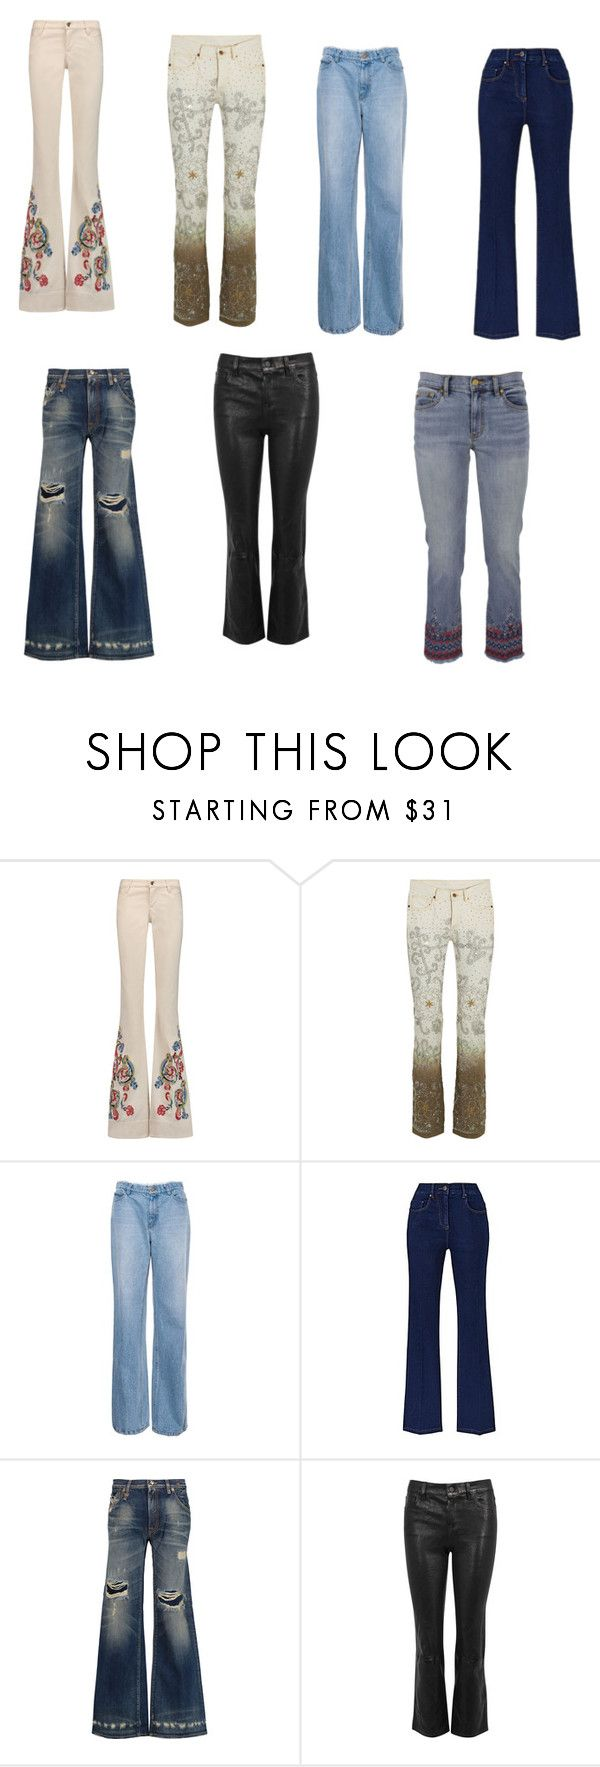 """""""Jeans"""" by elisethe on Polyvore featuring moda, Alice + Olivia, Ashish, R13, J Brand e Tory Burch"""